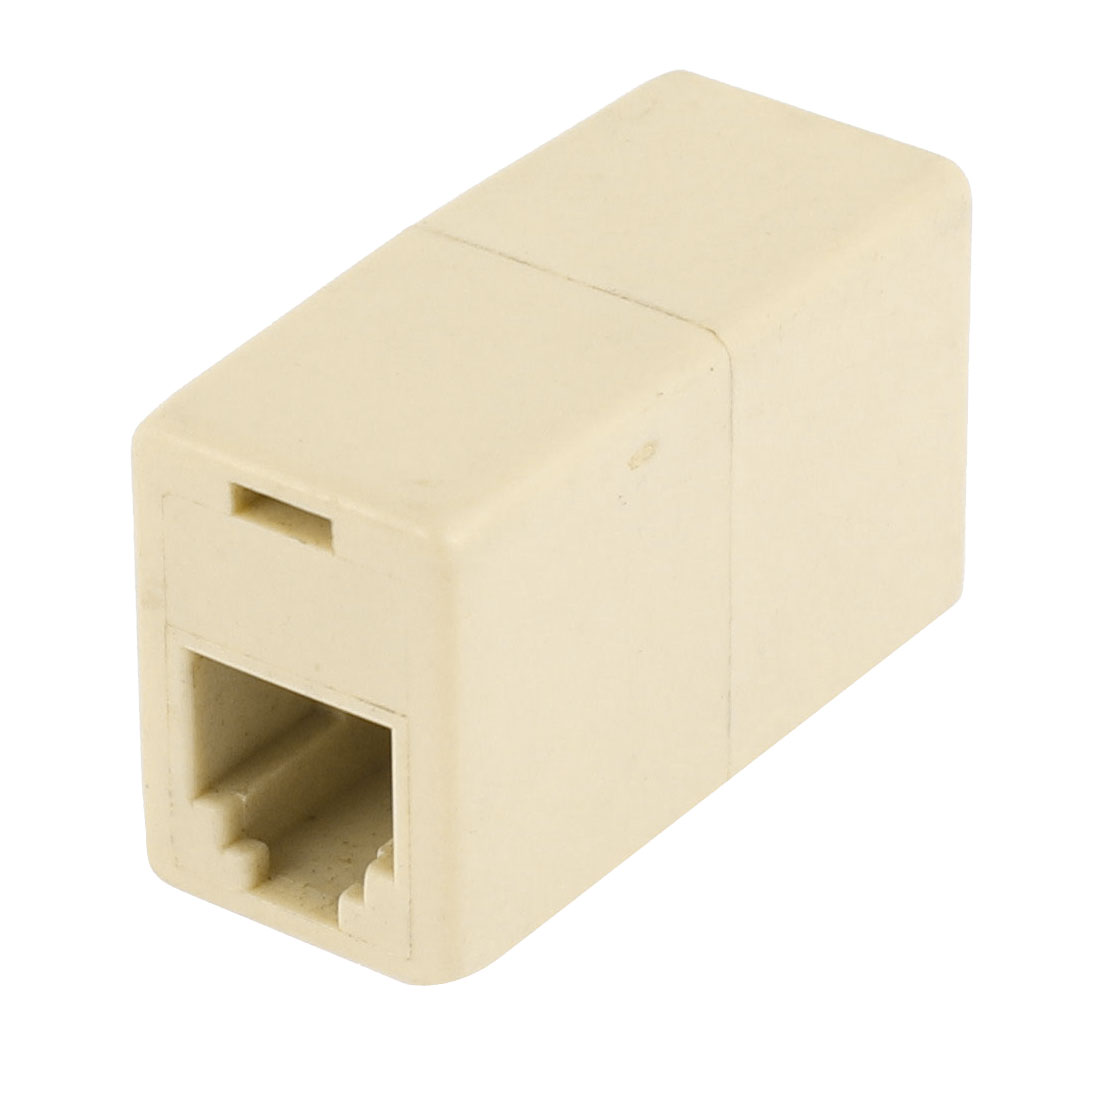 10PCS RJ45 Coupler 8P8C Straight to Crossover Male Female change Extension Cross